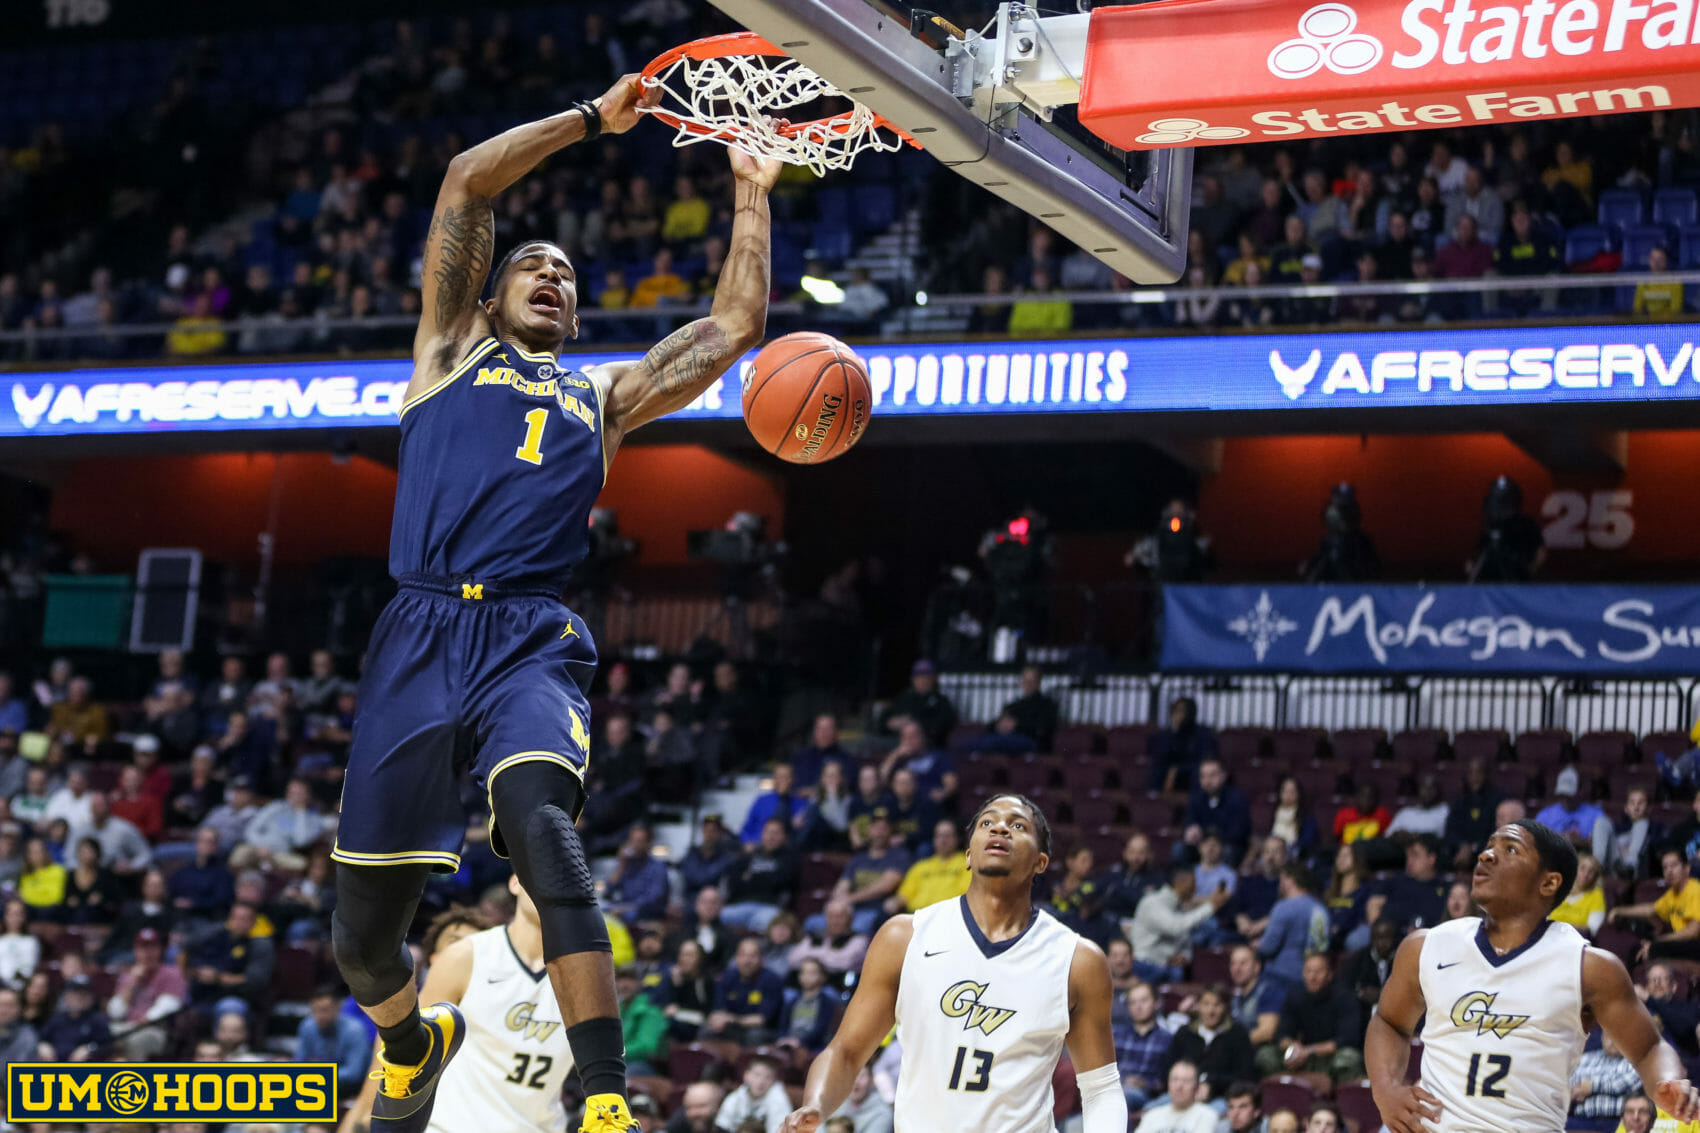 Michigan 84, George Washington 61-15